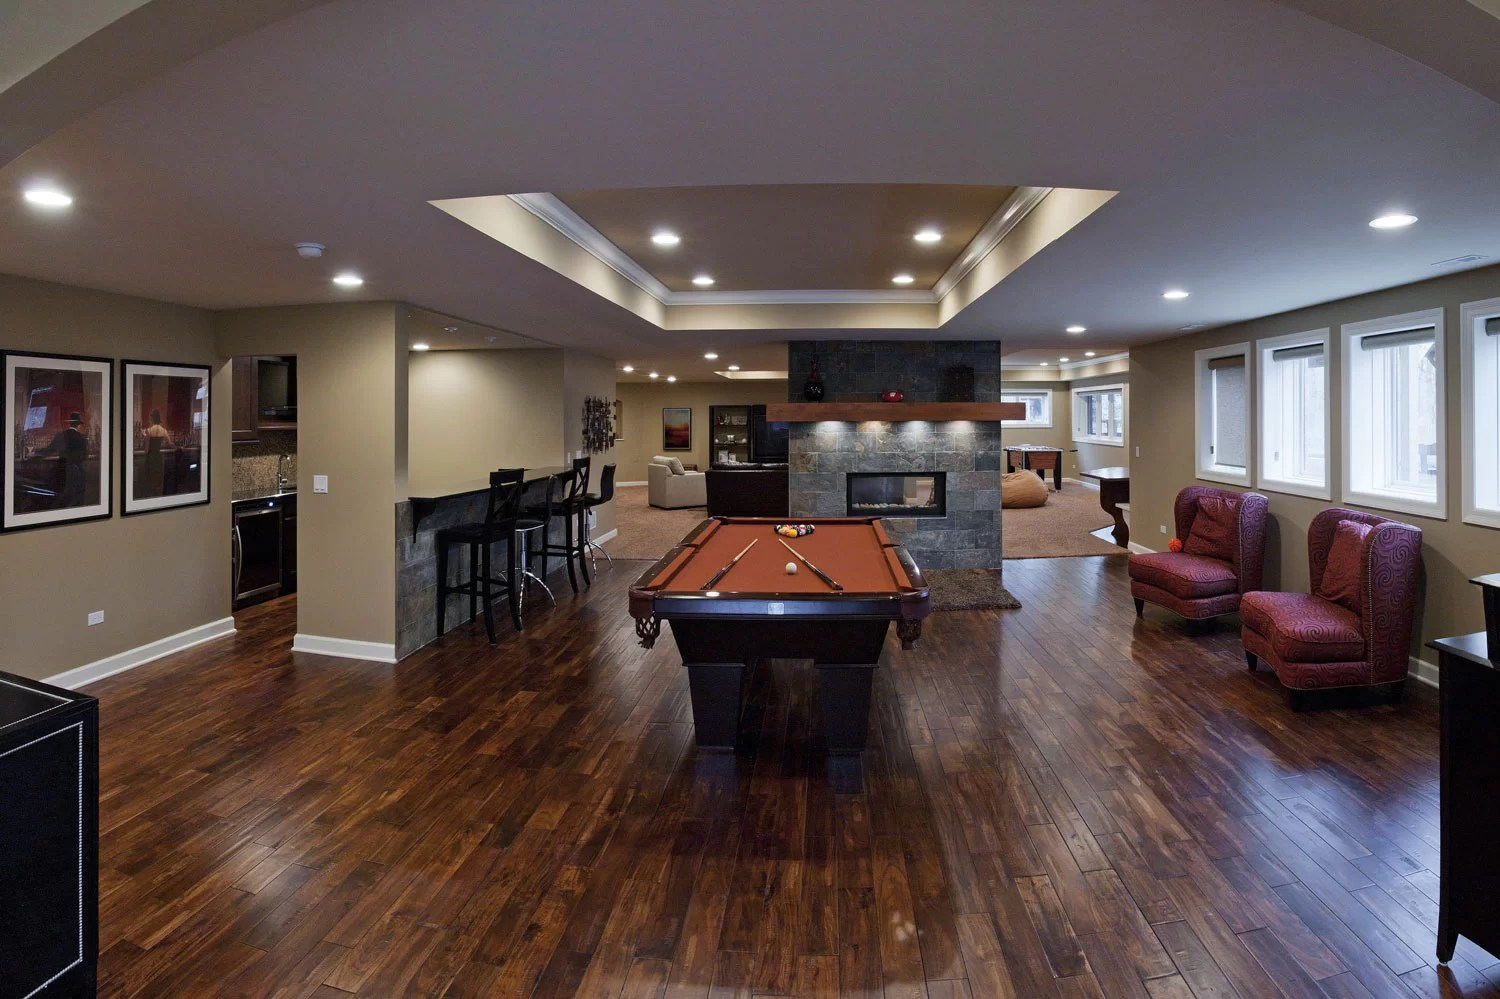 Chad & Michelle&39;s Basement Remodel Pictures   Luxury Home Remodeling   Sebring Design Build